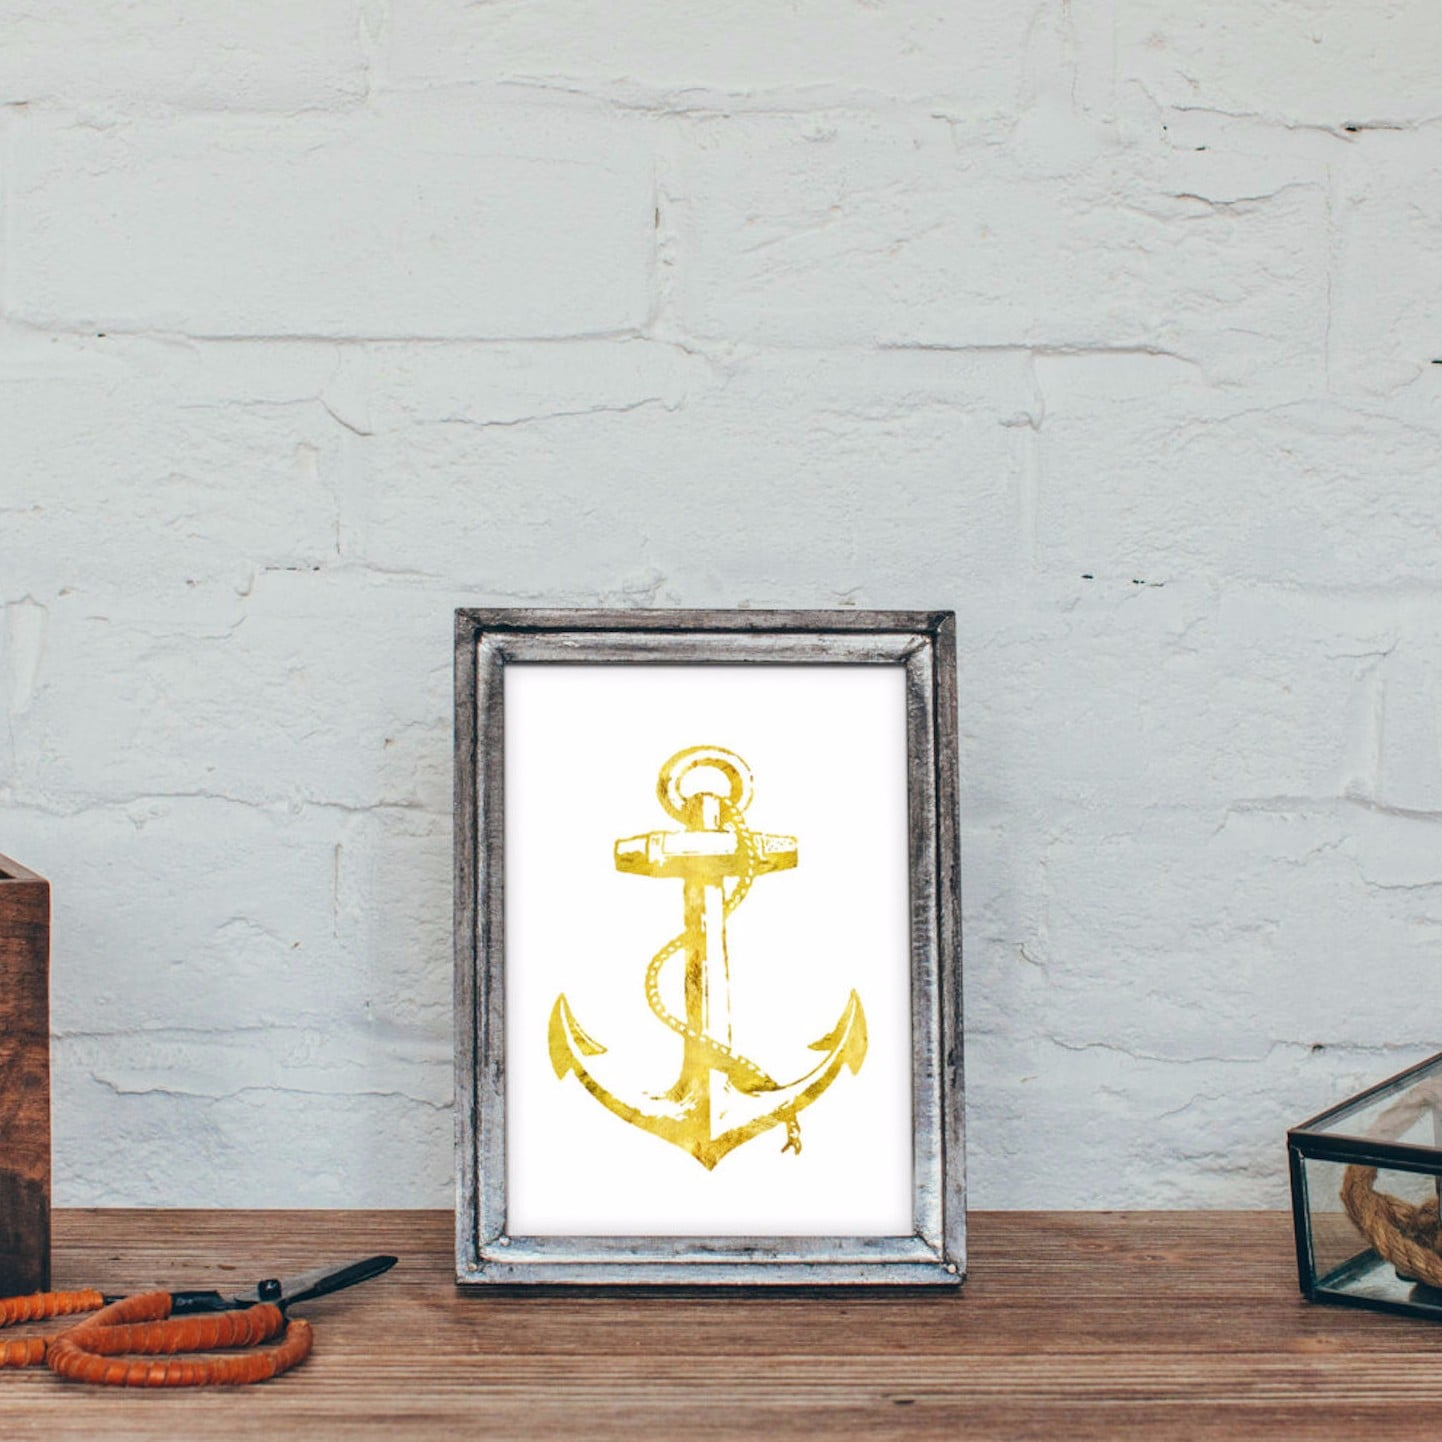 Nautical Bedroom Decor | POPSUGAR Home